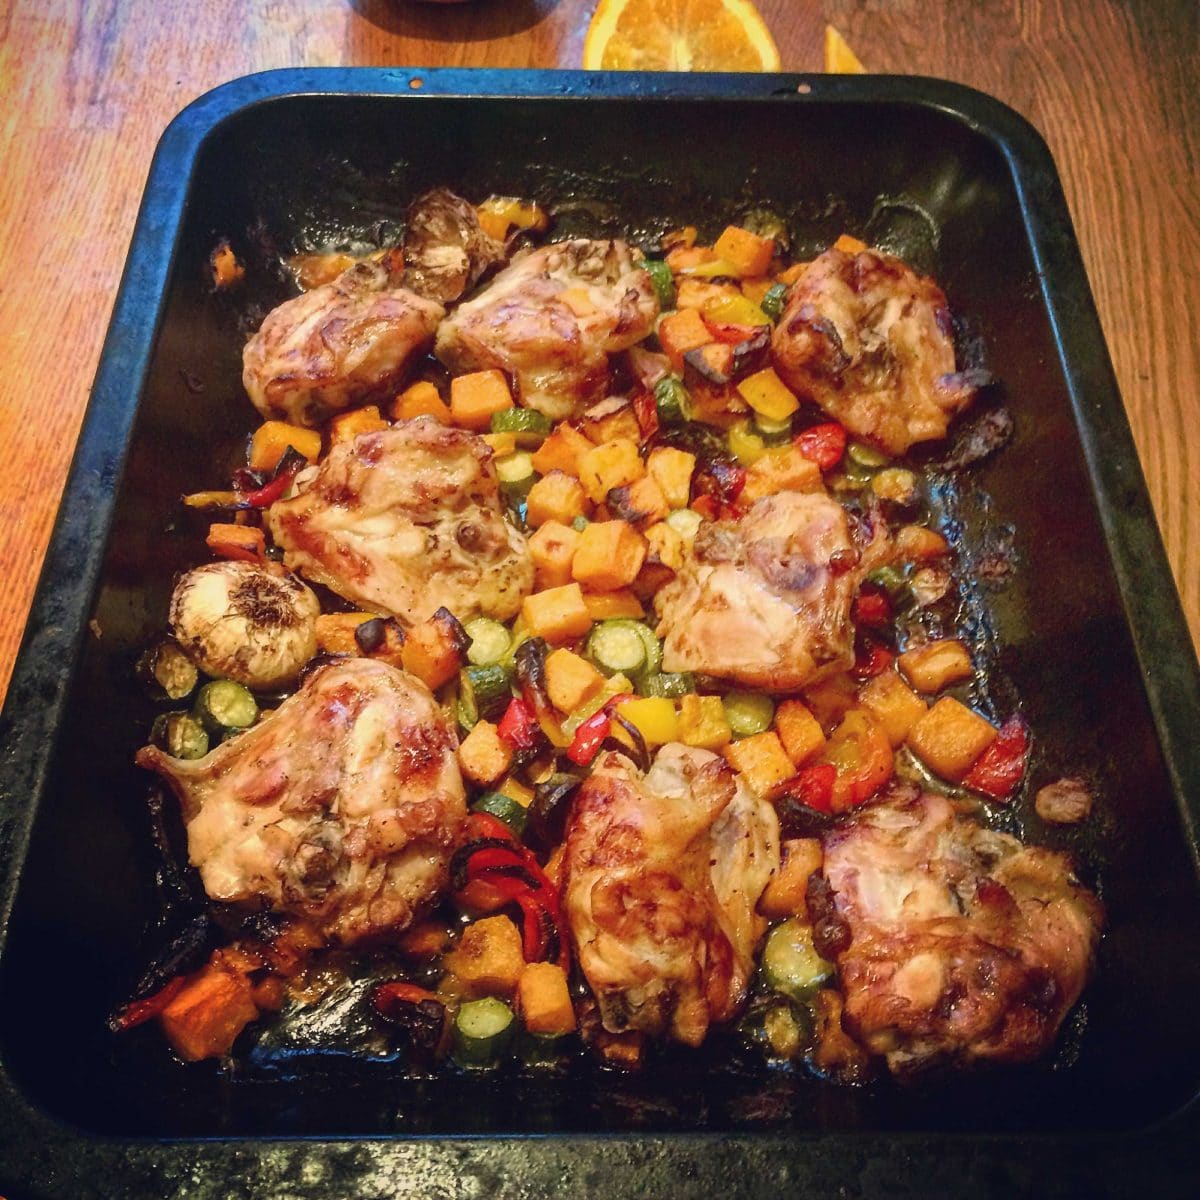 Chicken in the oven with veggies and honey recipe